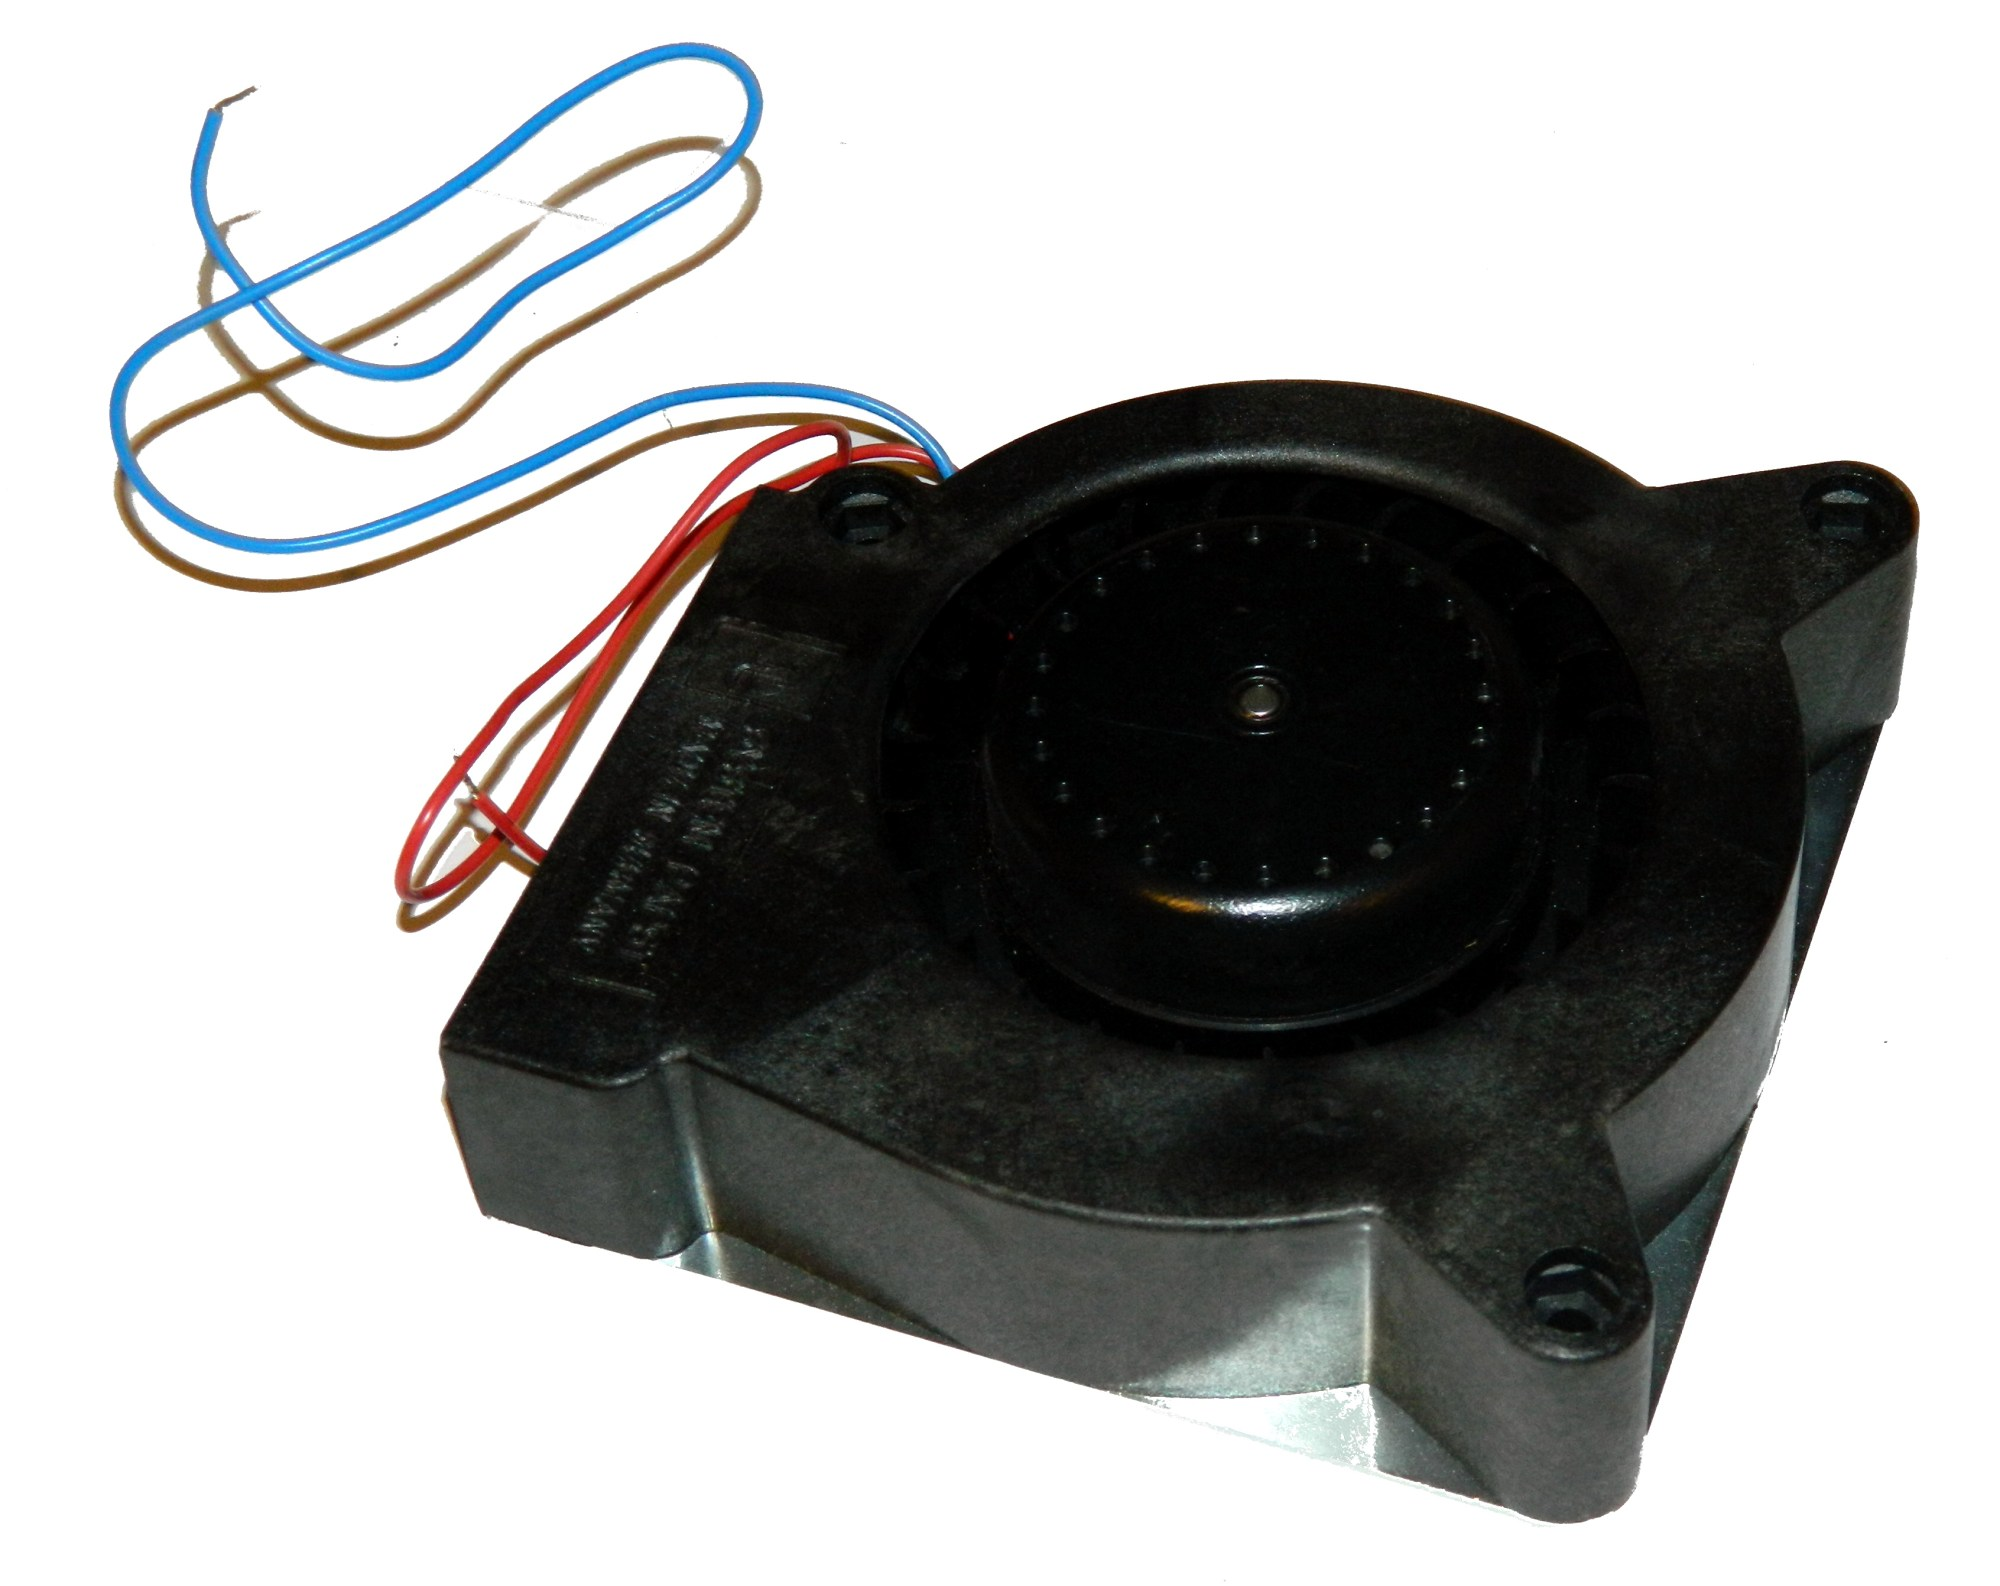 hight resolution of details about papst rl90 18 24 24vdc 120mm chassis fan blower 2 wire 30cm unterminated